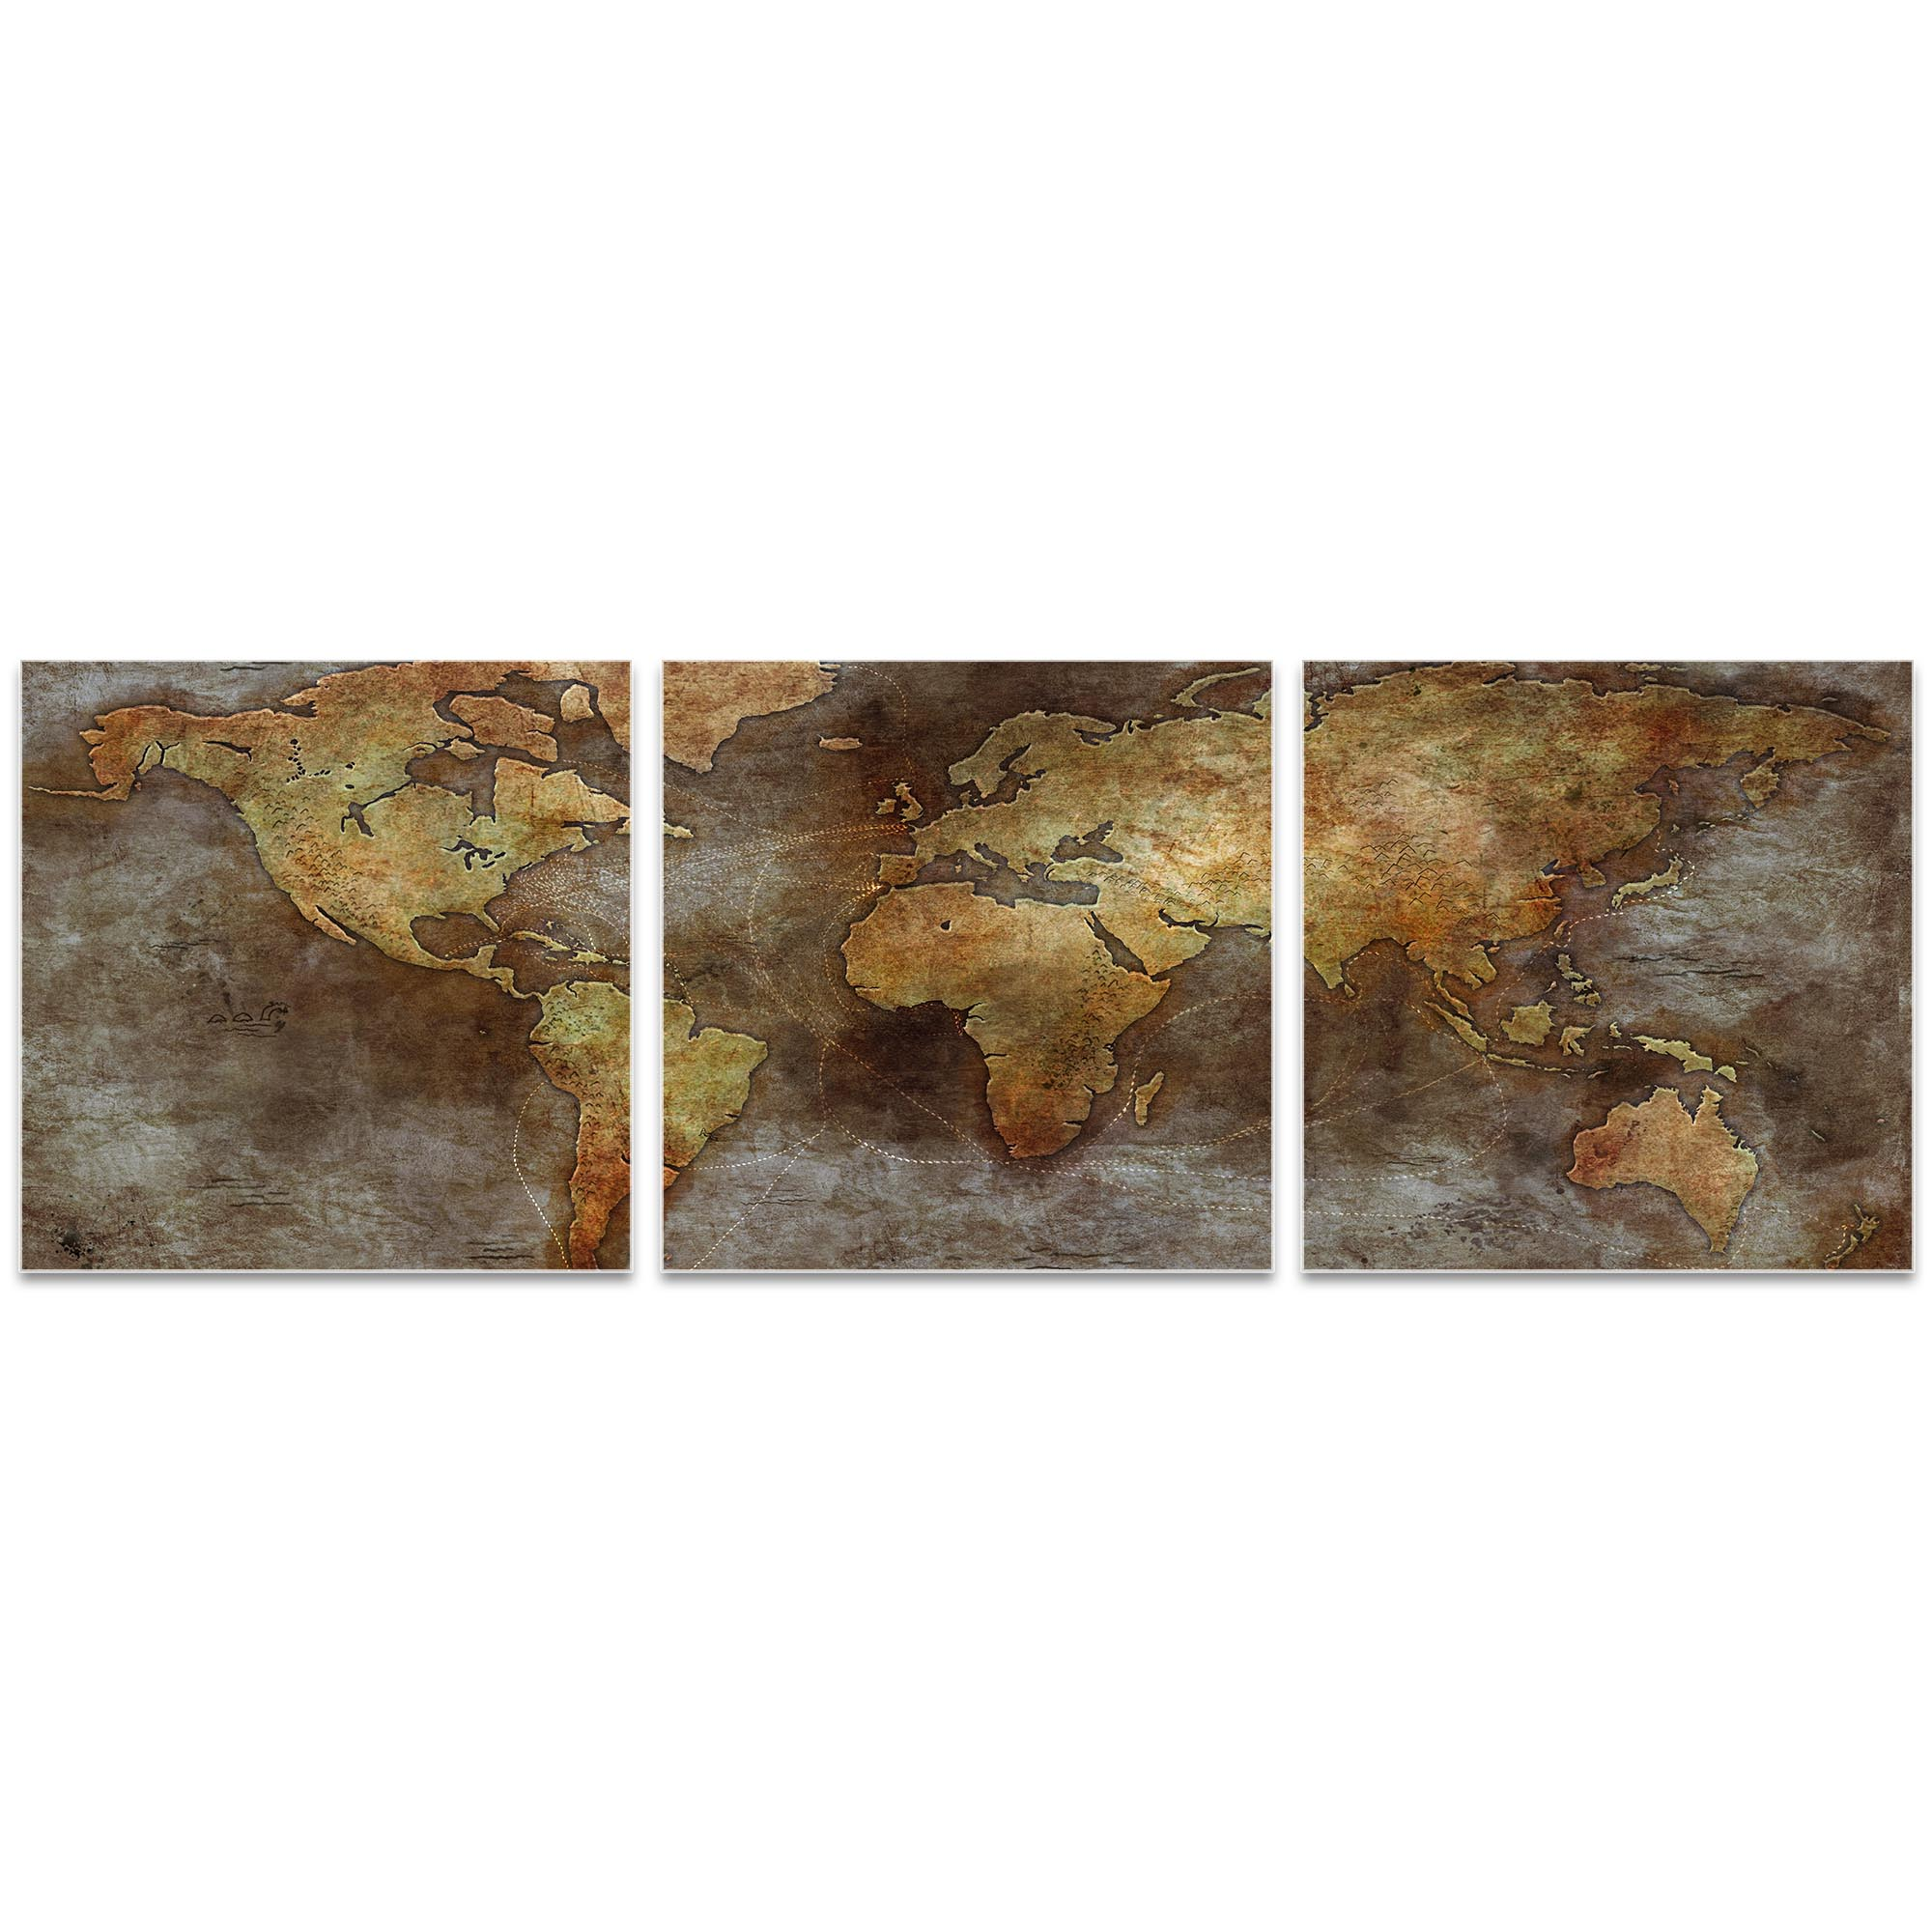 1800s Trade Routes Map Triptych 38x12in. Metal or Acrylic Colonial Decor - Image 2